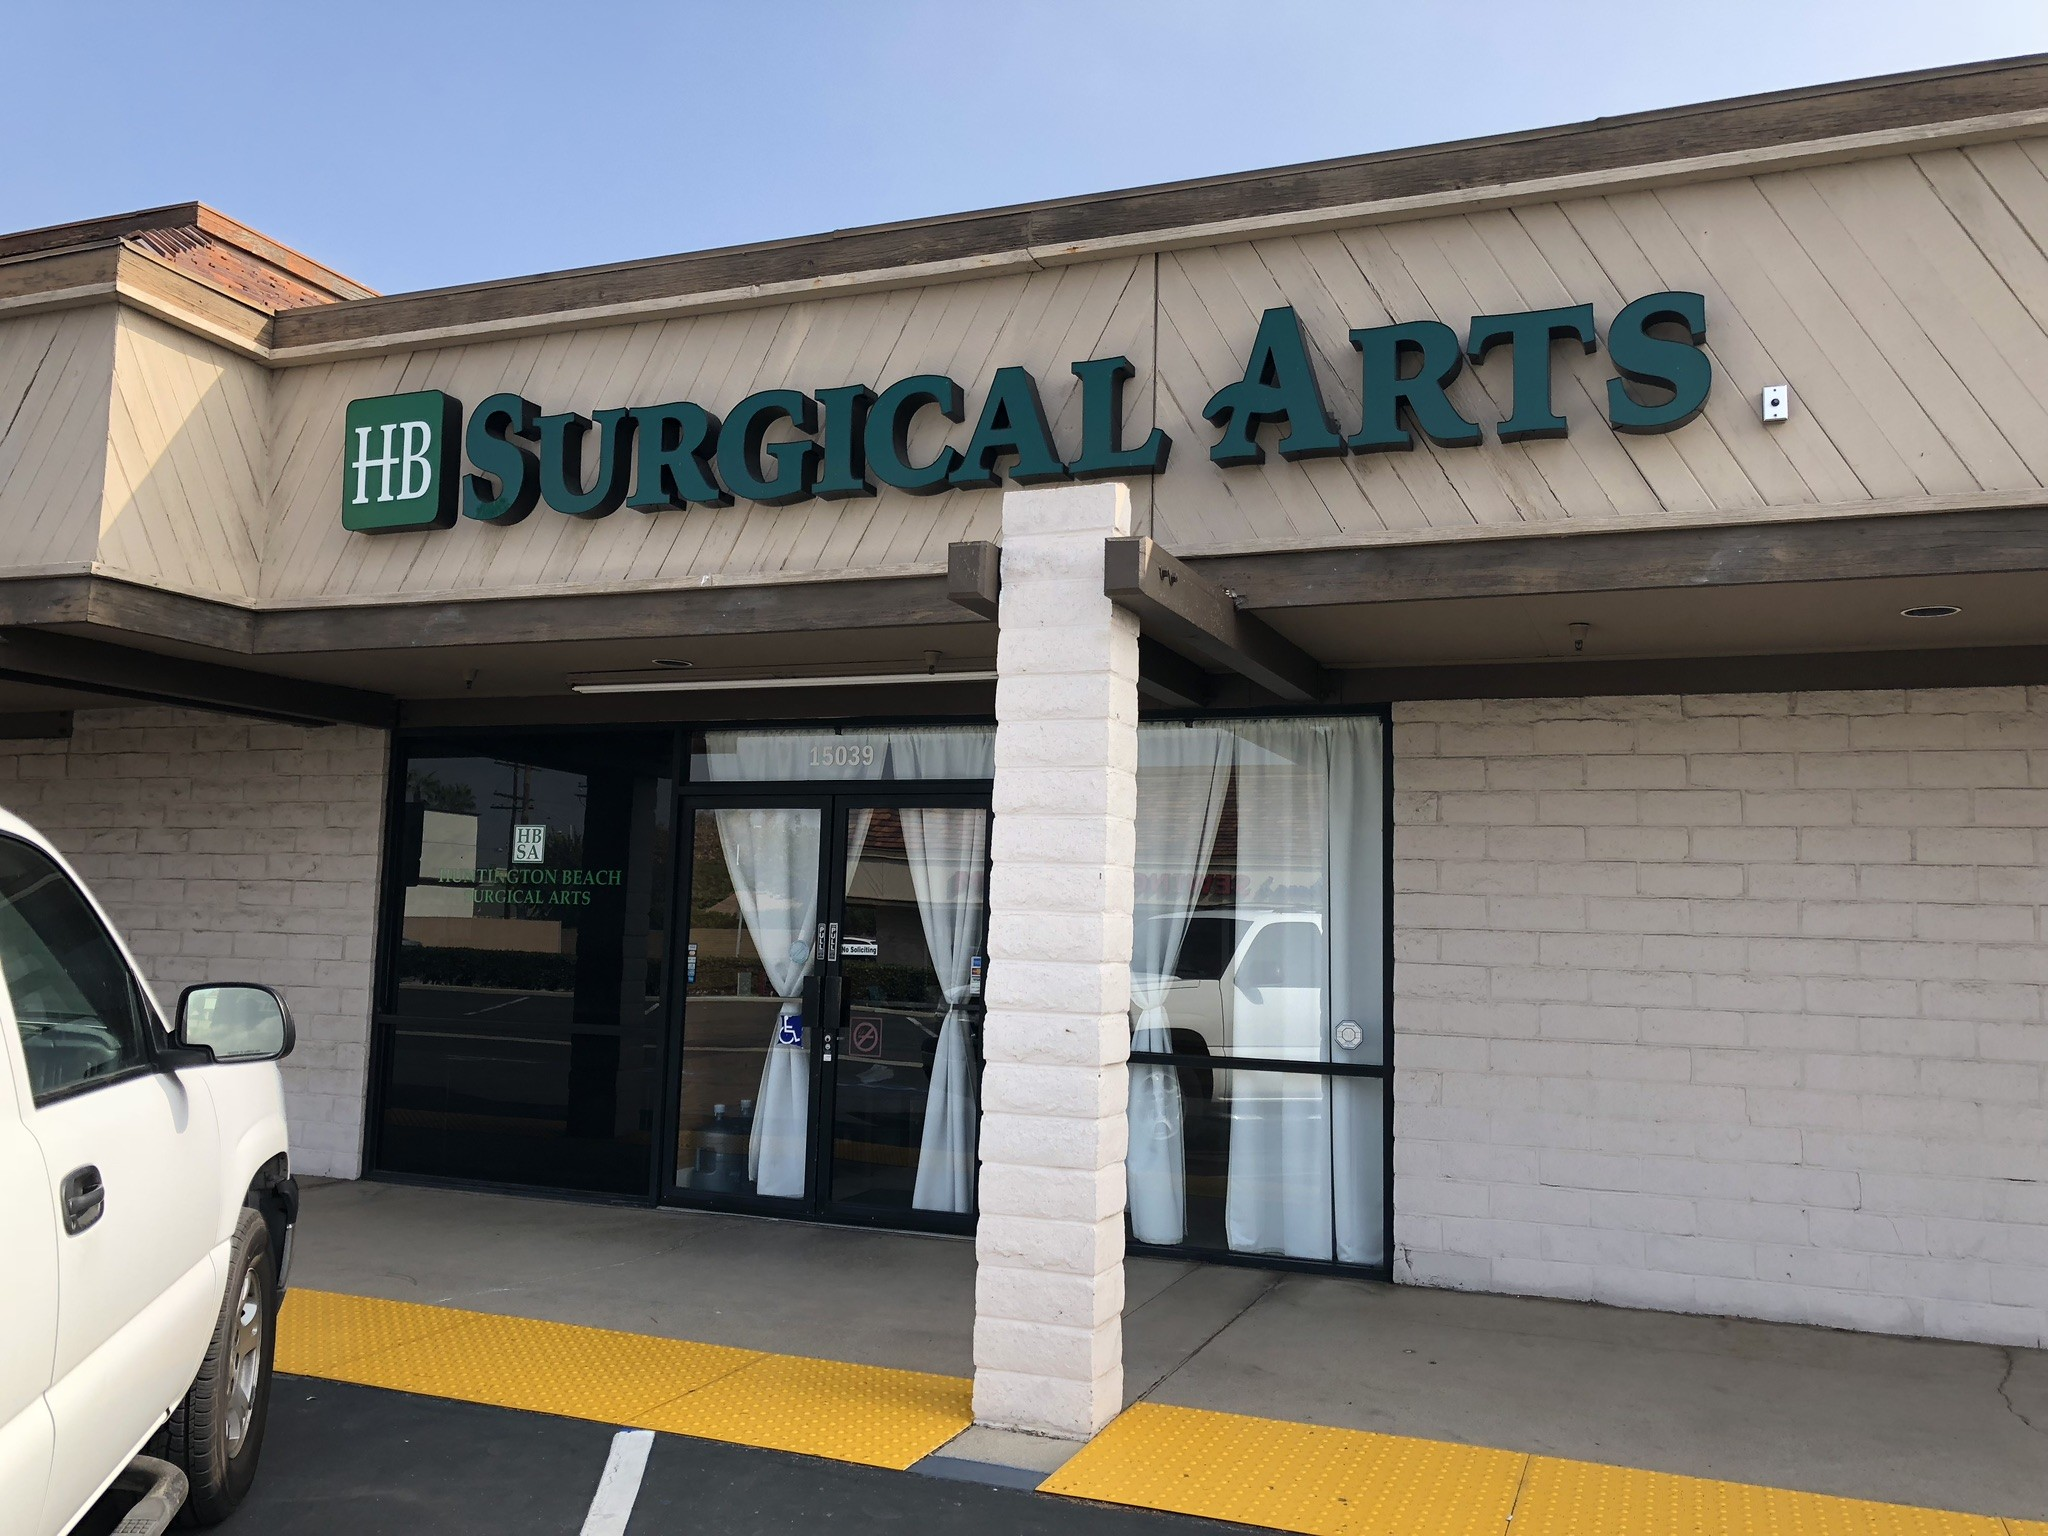 Outside Picture of HB Surgical Arts